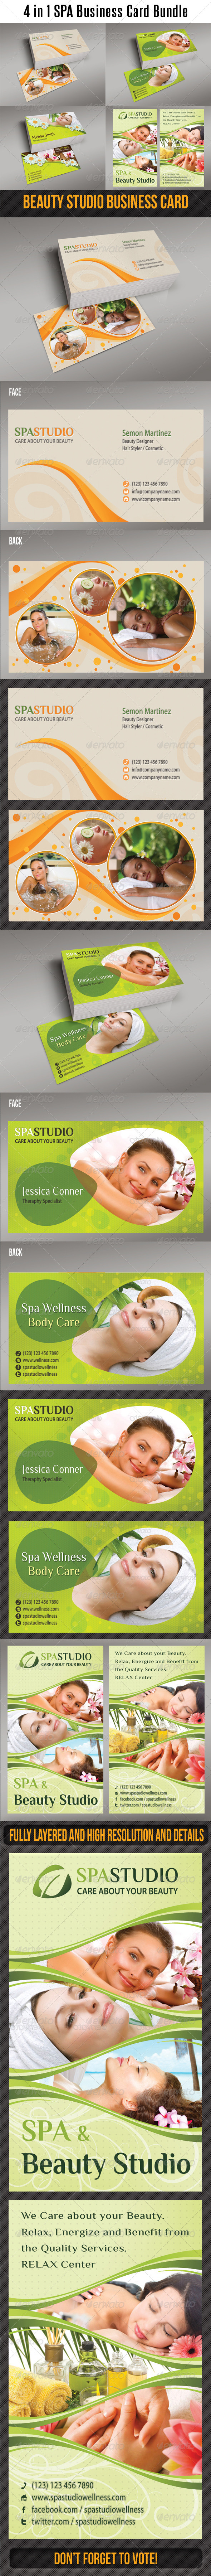 4 in 1 Spa Wellness Business Card Bundle - Creative Business Cards